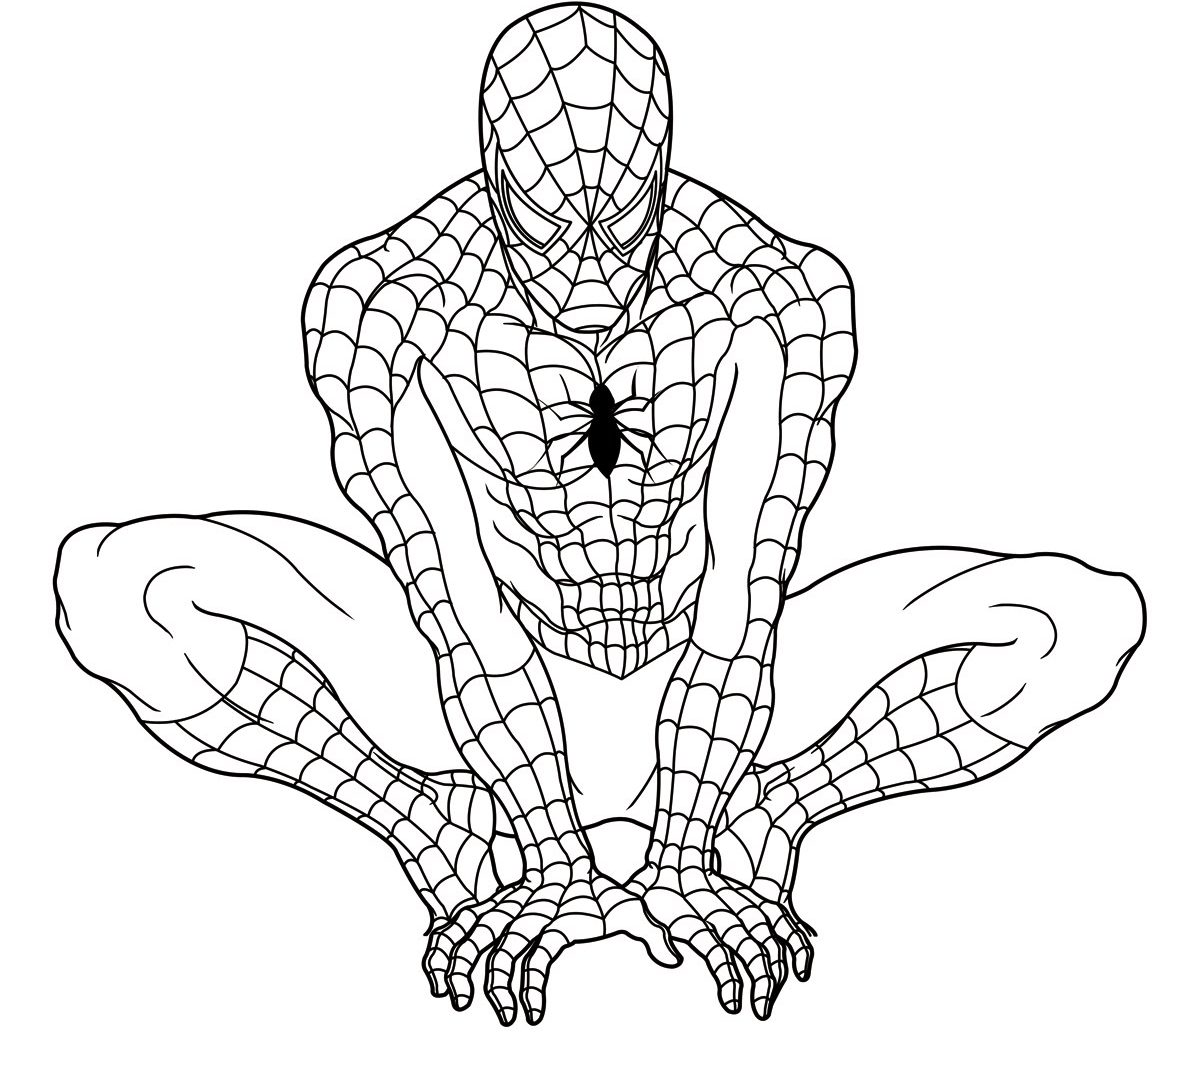 1181x1080 Printable Spiderman Coloring Pages With Top Free Avenger General